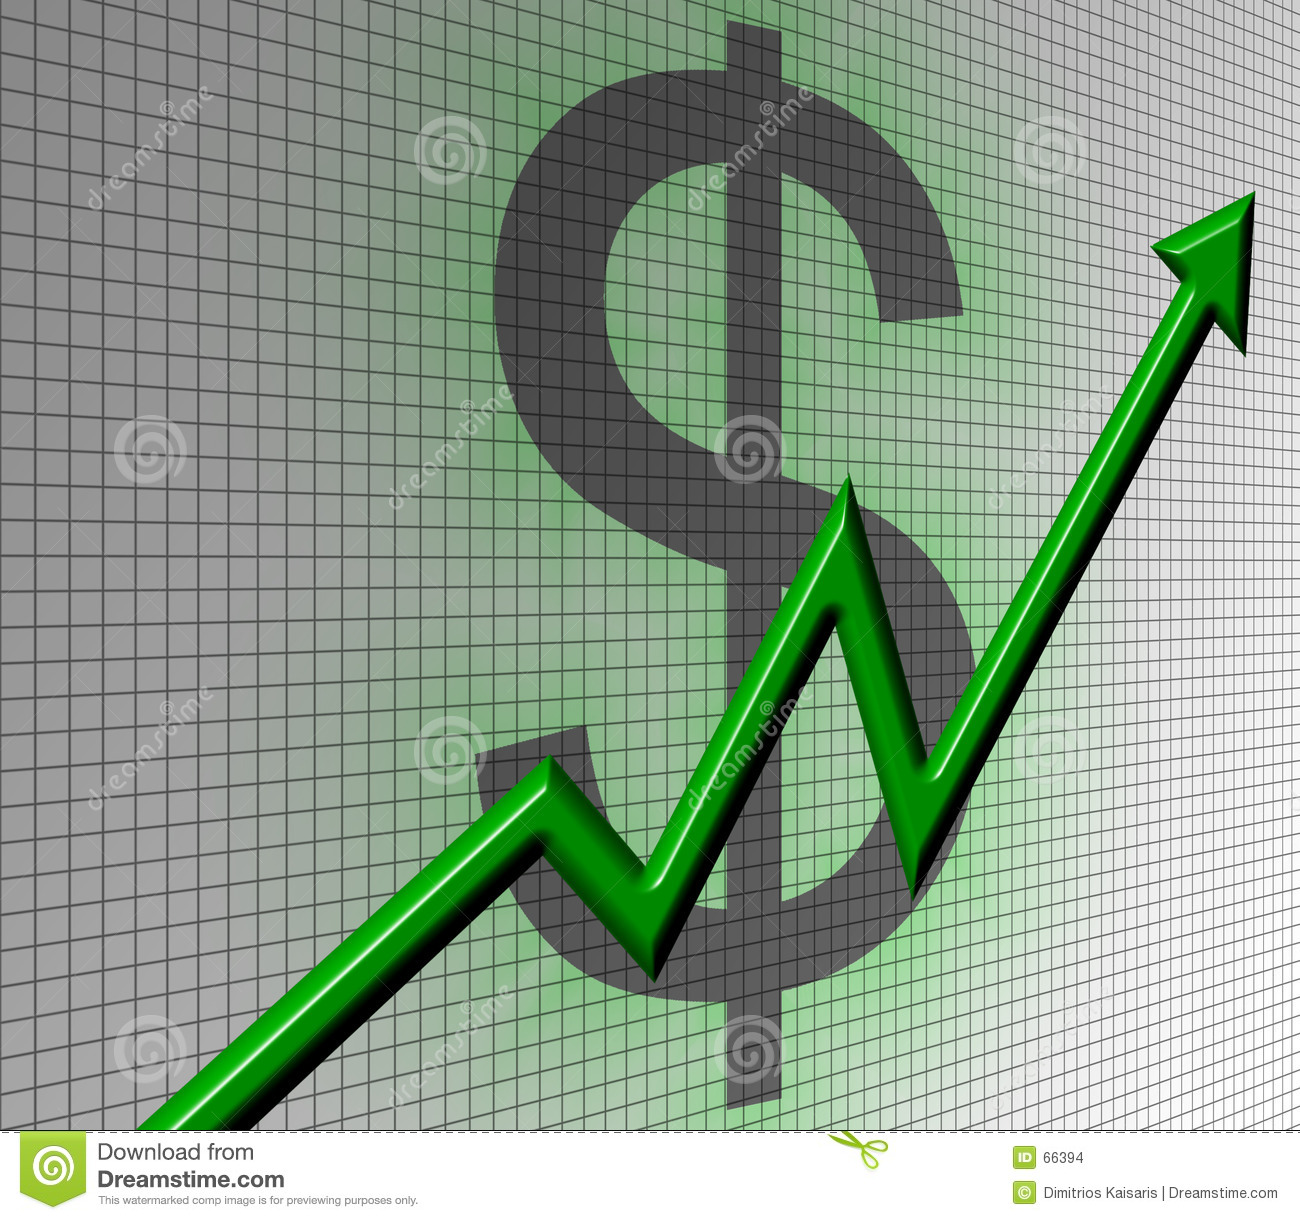 Http Www Dreamstime Com Stock Images Stock Chart Image66394